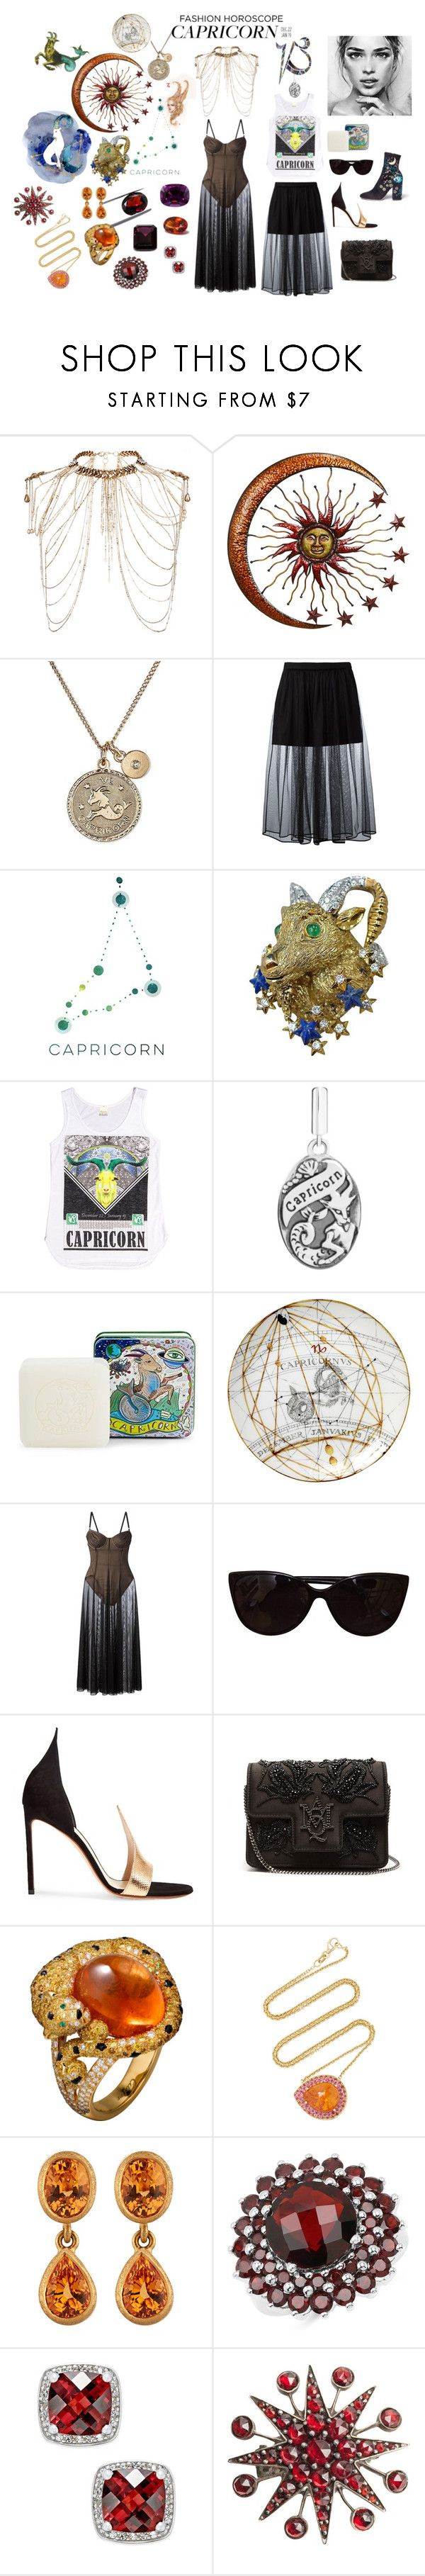 """Capricorn Garnet"" by sarahhughes-net ❤ liked on Polyvore featuring Erickson Beamon, Givenchy, Barcode Apparel, Pré de Provence, Norma Kamali, Tiffany & Co., Francesco Russo, Alexander McQueen, Lauren K and Malcolm Betts"